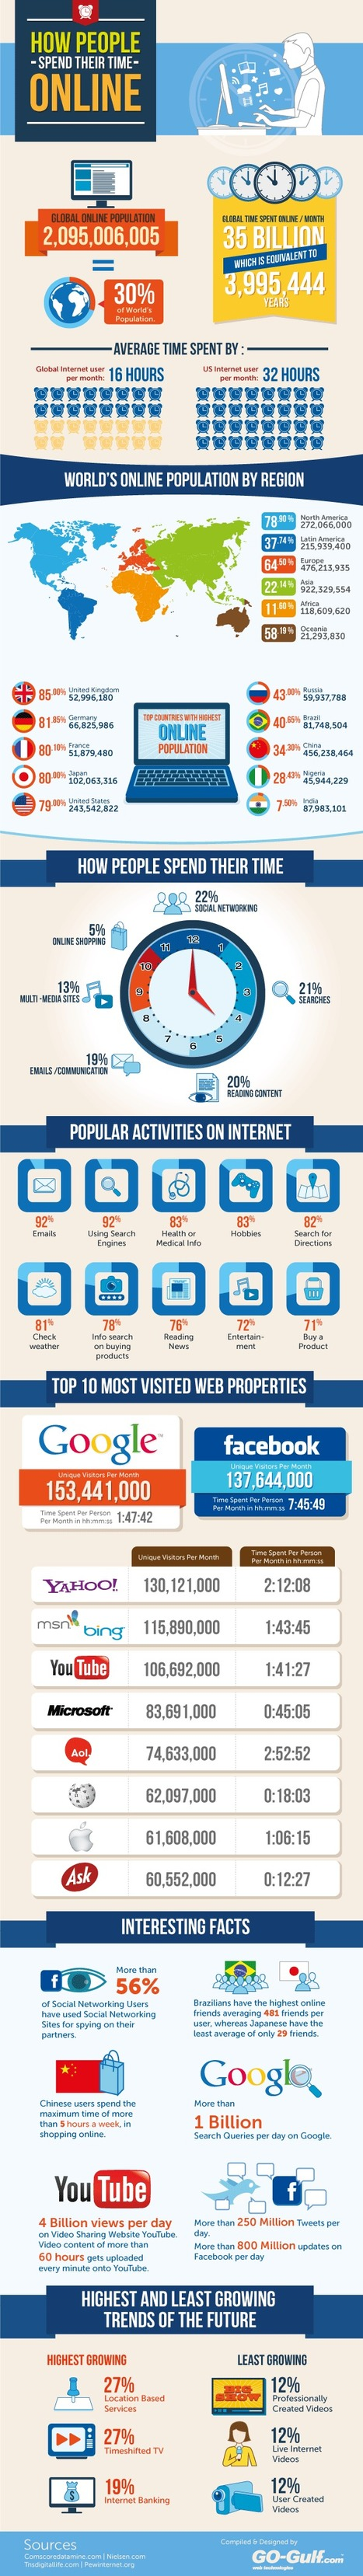 How People Spend Their Time Online [Infographic] | Groupe UX - IESA | Scoop.it